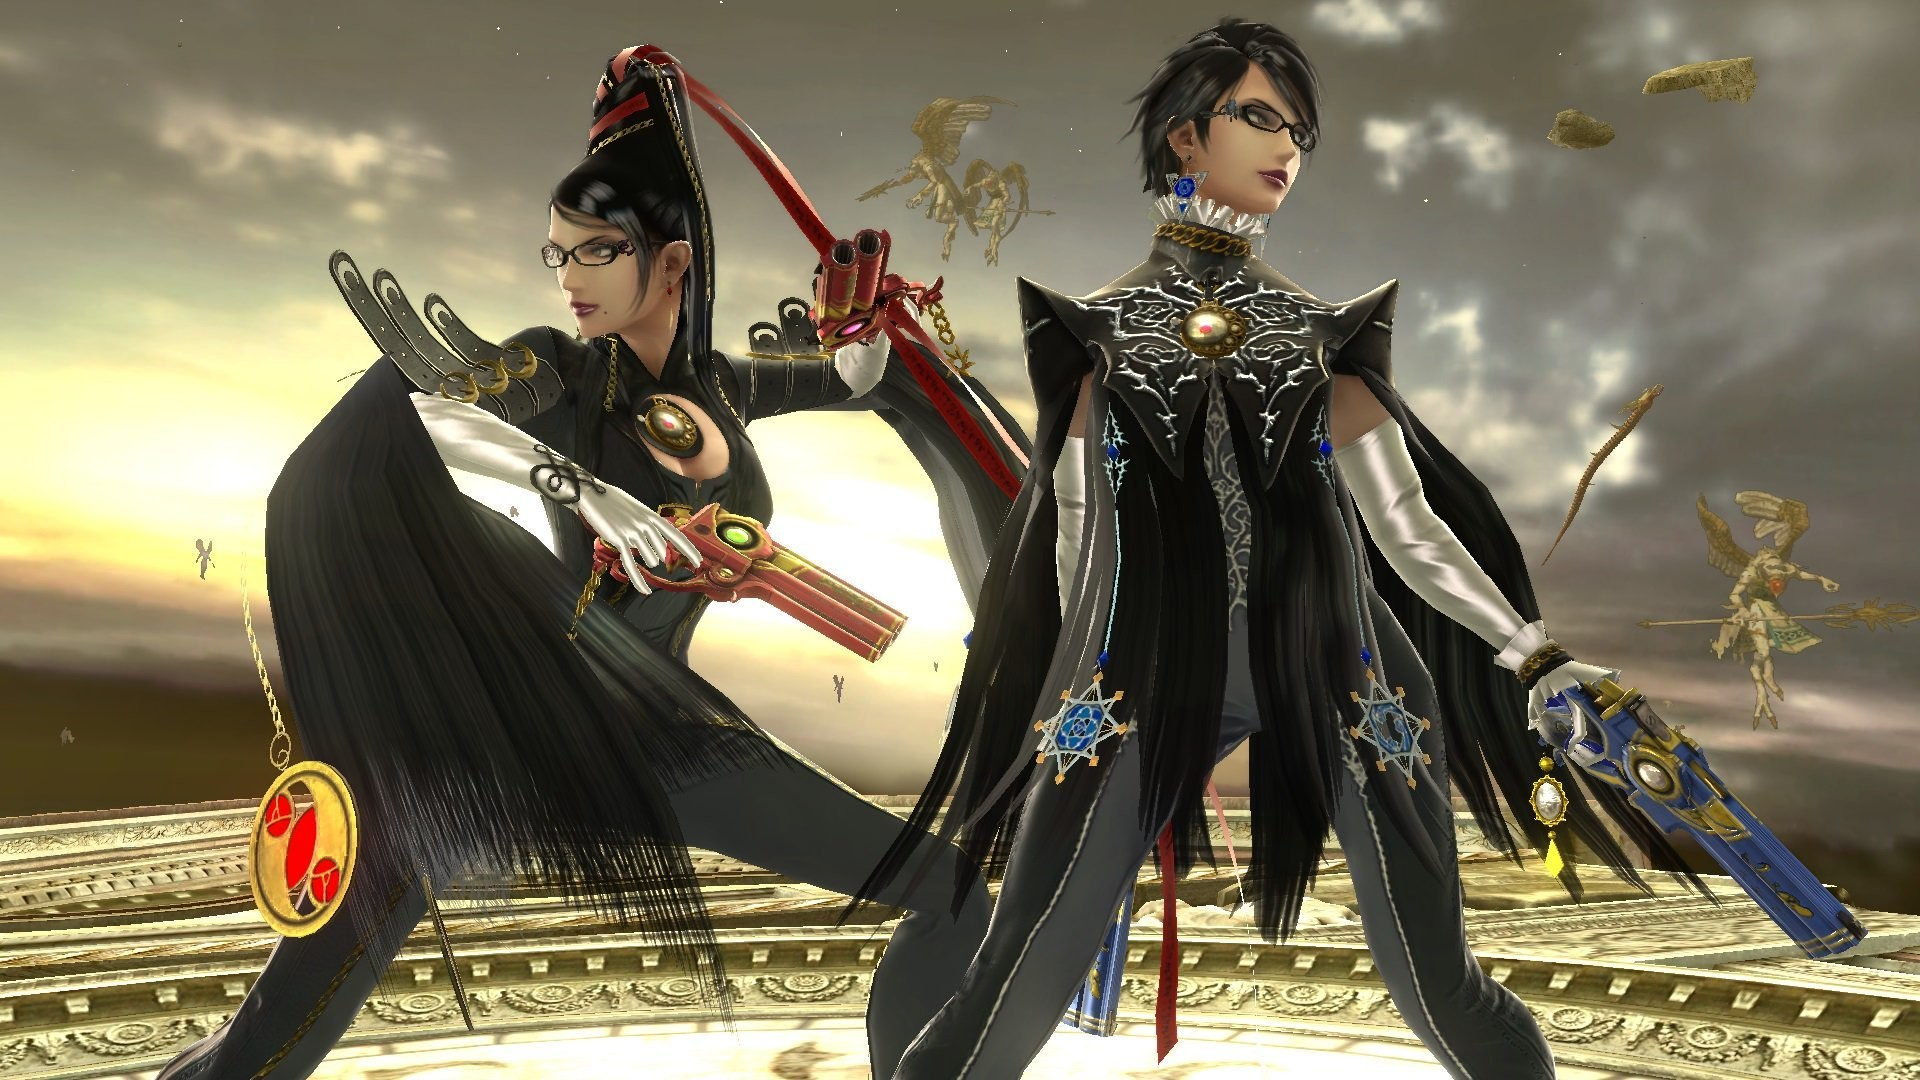 1920x1080 Bayonetta Dance-Off Backfires During Crucial Super Smash Bros. Match